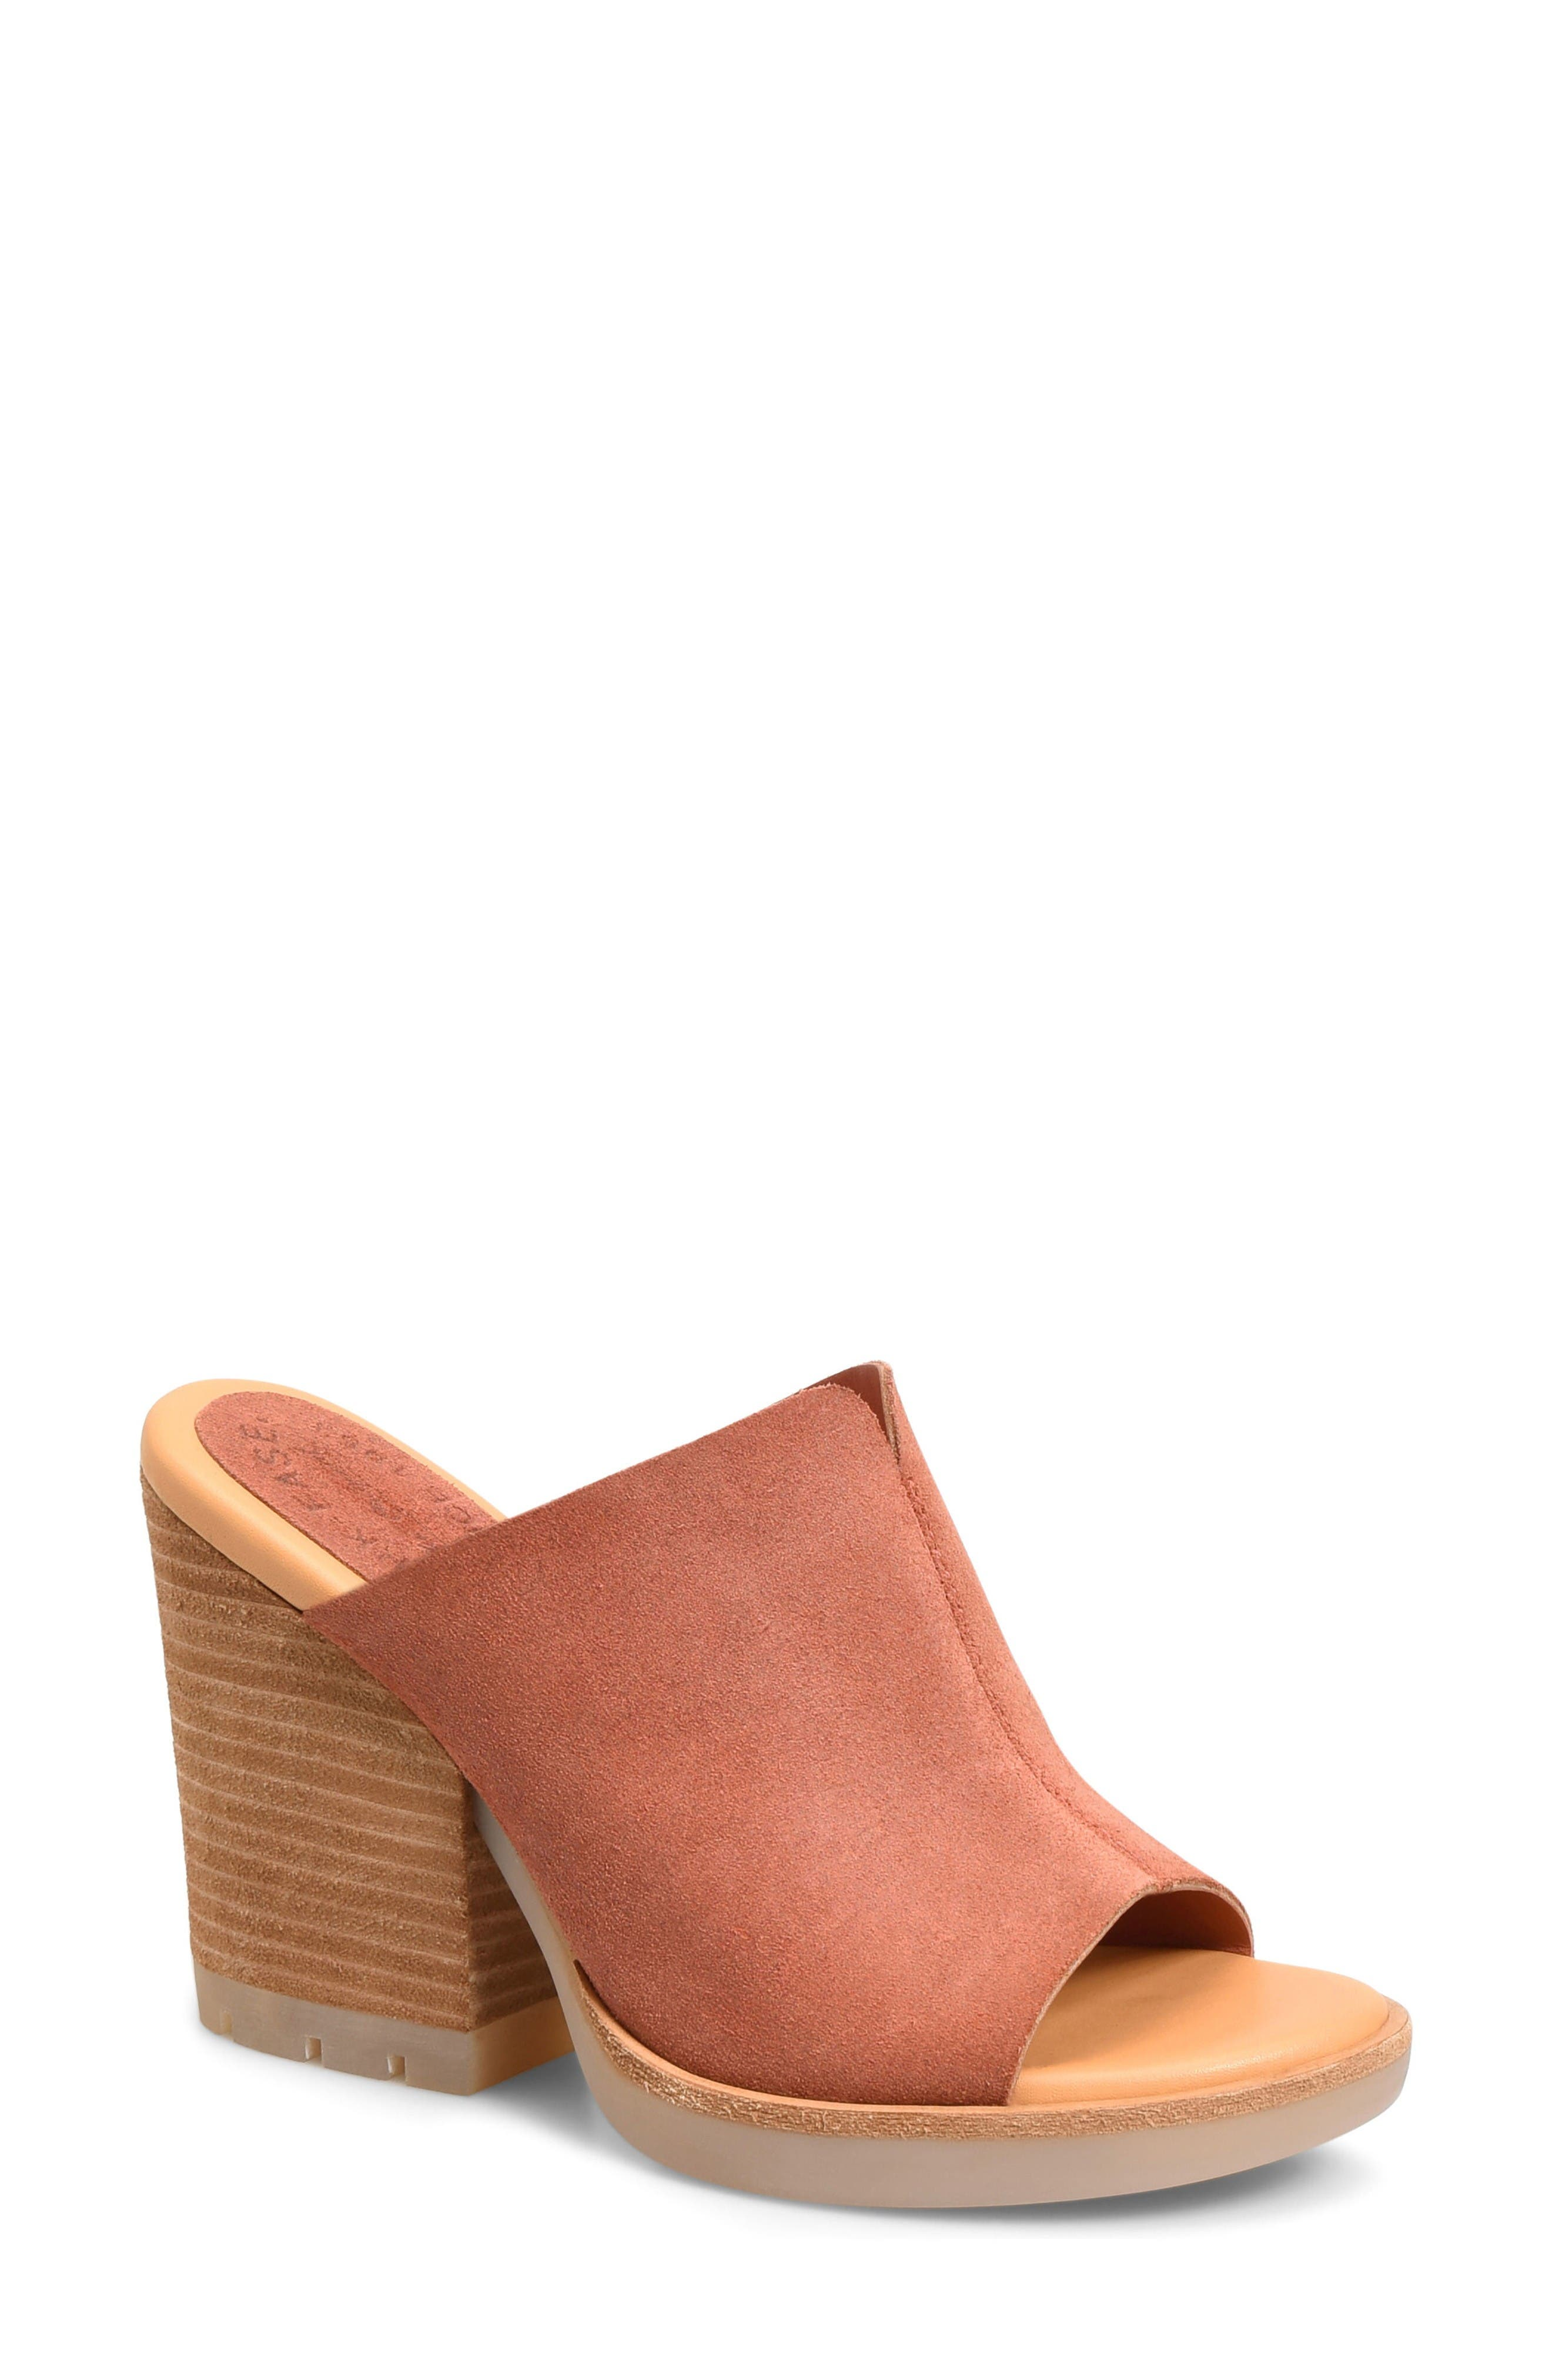 Alternate Image 1 Selected - Kork-Ease® Lawton Sandal (Women)